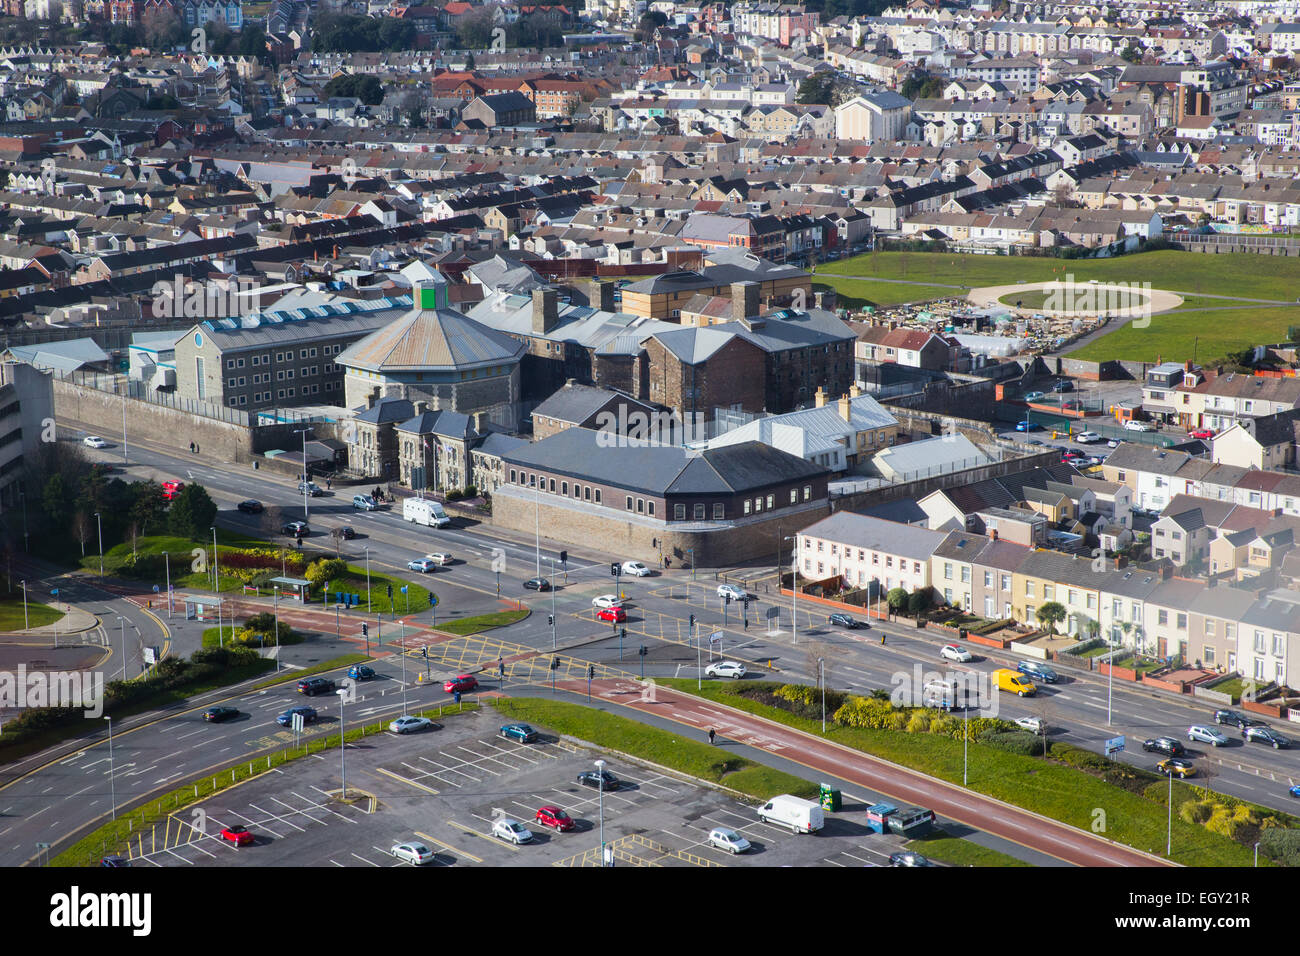 Aerial view of Swansea prison. - Stock Image